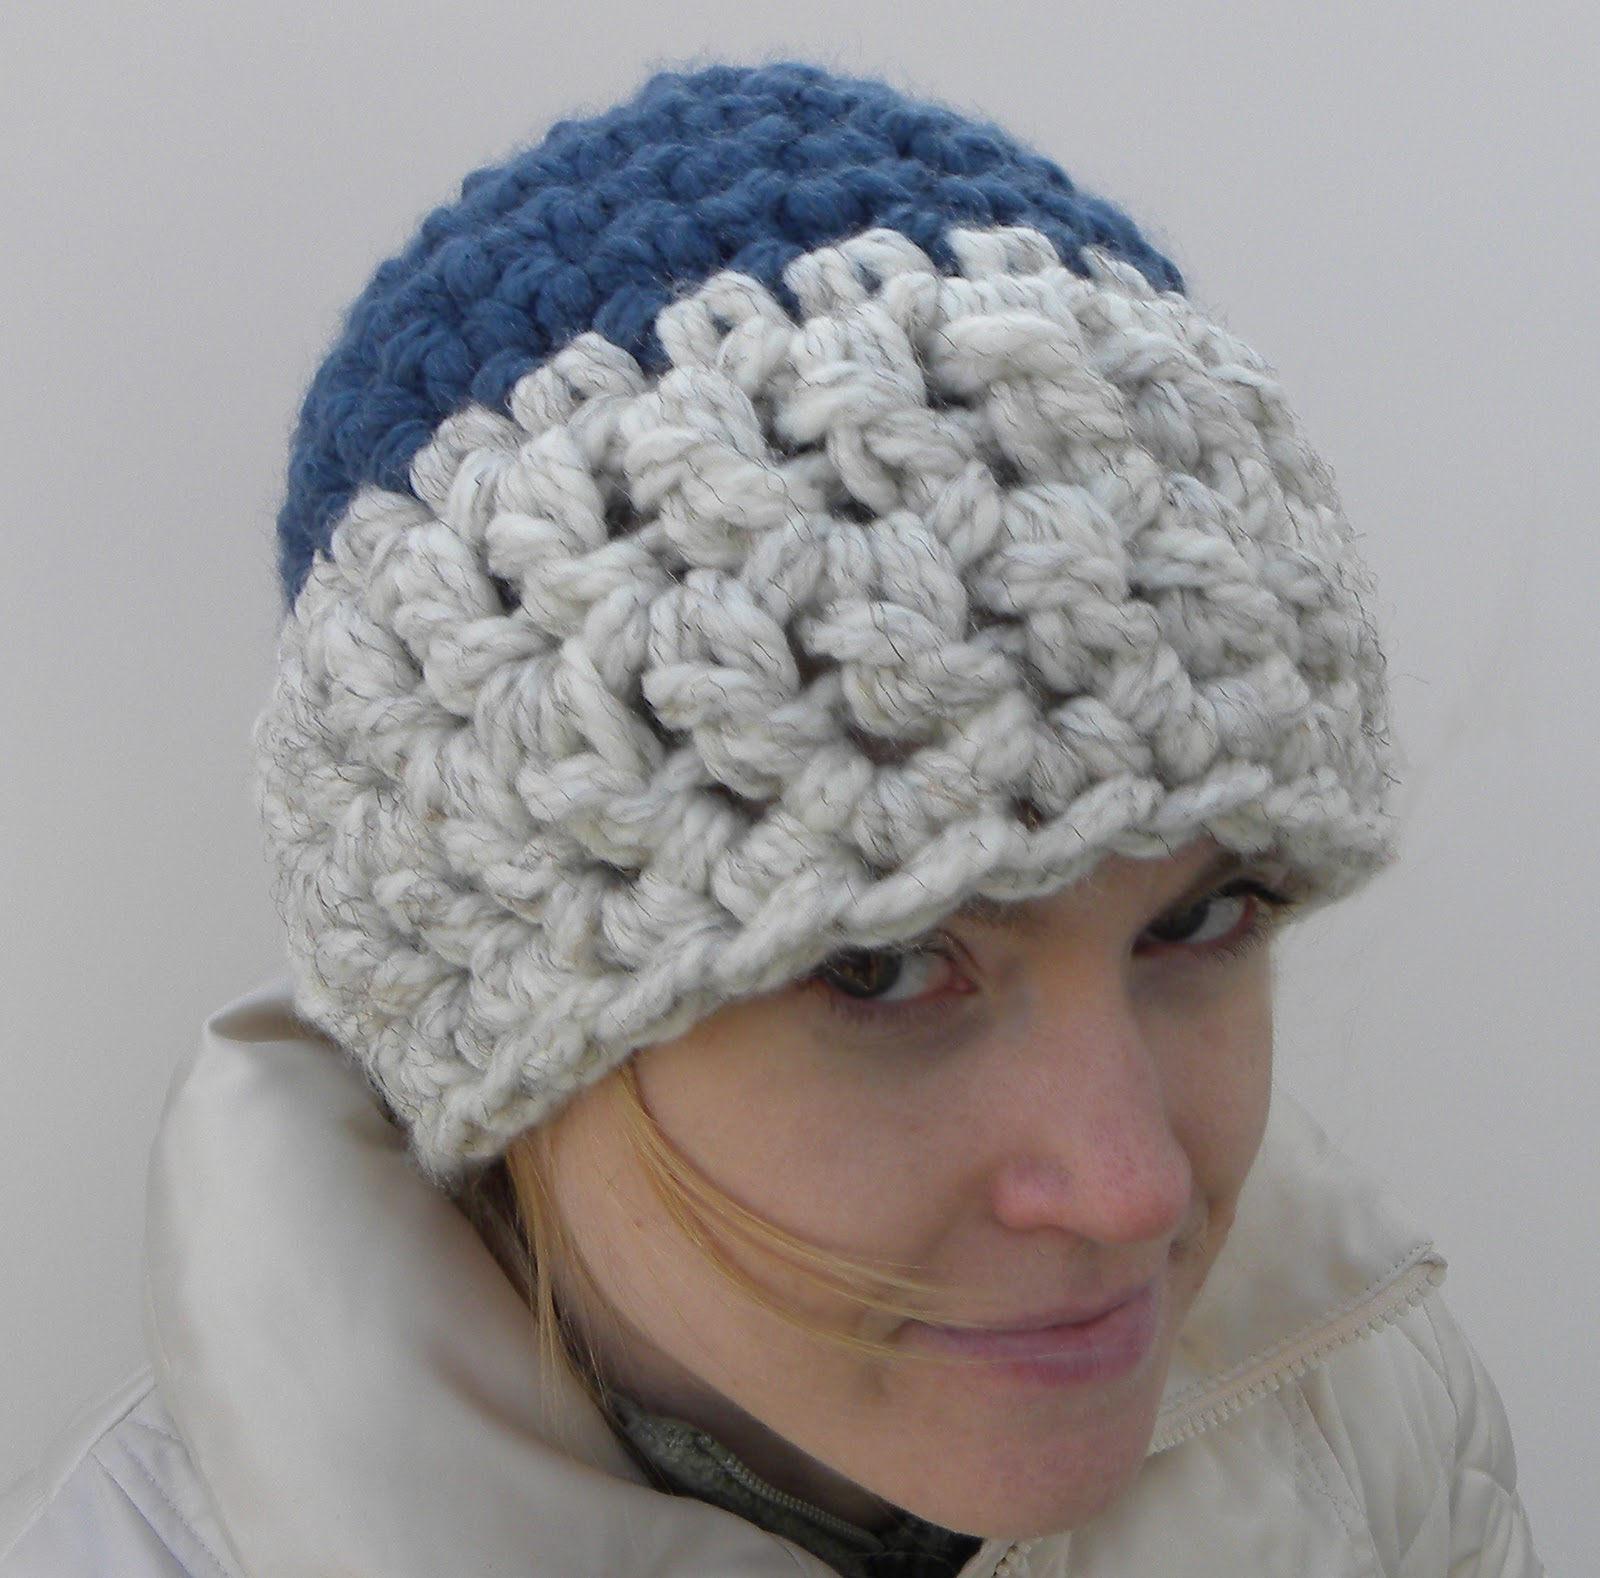 flower Gurl crafts: Crochet Beanie Hat